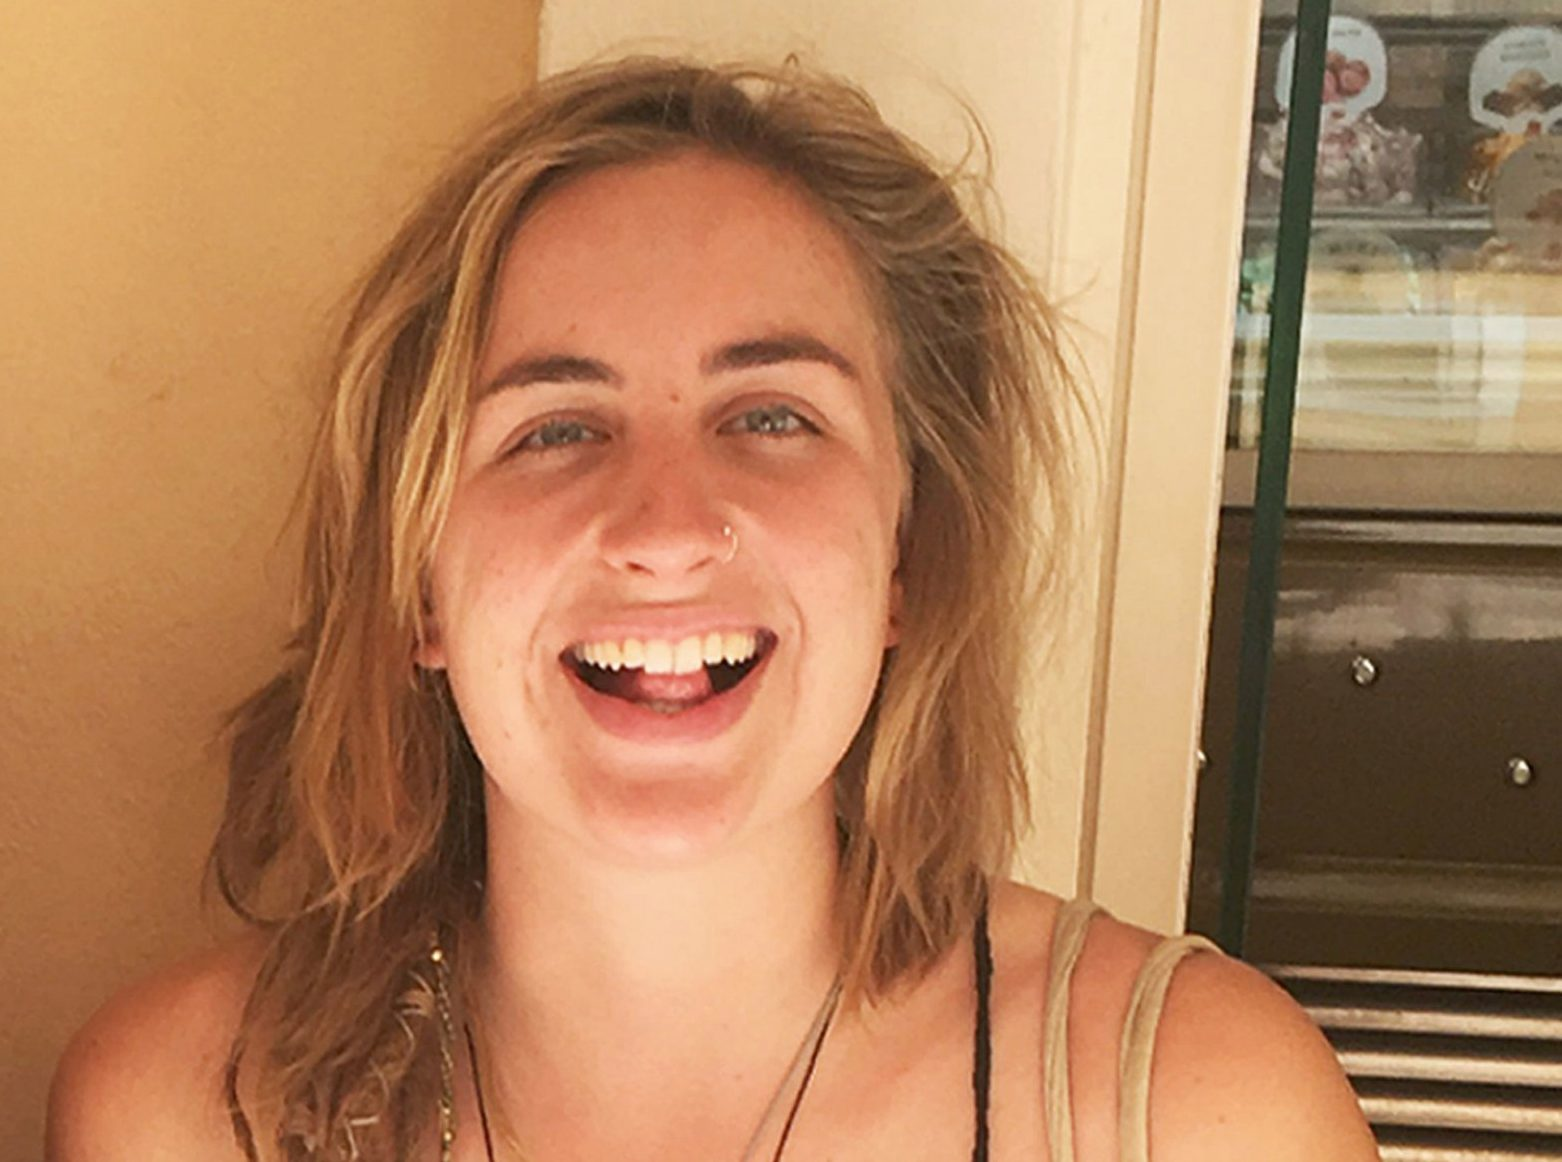 Undated handout photo issued by the Lucie Blackman Trust of missing 23 year old Catherine Shaw last seen in Guatemala. PRESS ASSOCIATION Photo. Issue date: Monday March 11, 2019. See PA story MISSING Guatemala. Photo credit should read: Lucie Blackman Trust /PA Wire NOTE TO EDITORS: This handout photo may only be used in for editorial reporting purposes for the contemporaneous illustration of events, things or the people in the image or facts mentioned in the caption. Reuse of the picture may require further permission from the copyright holder.